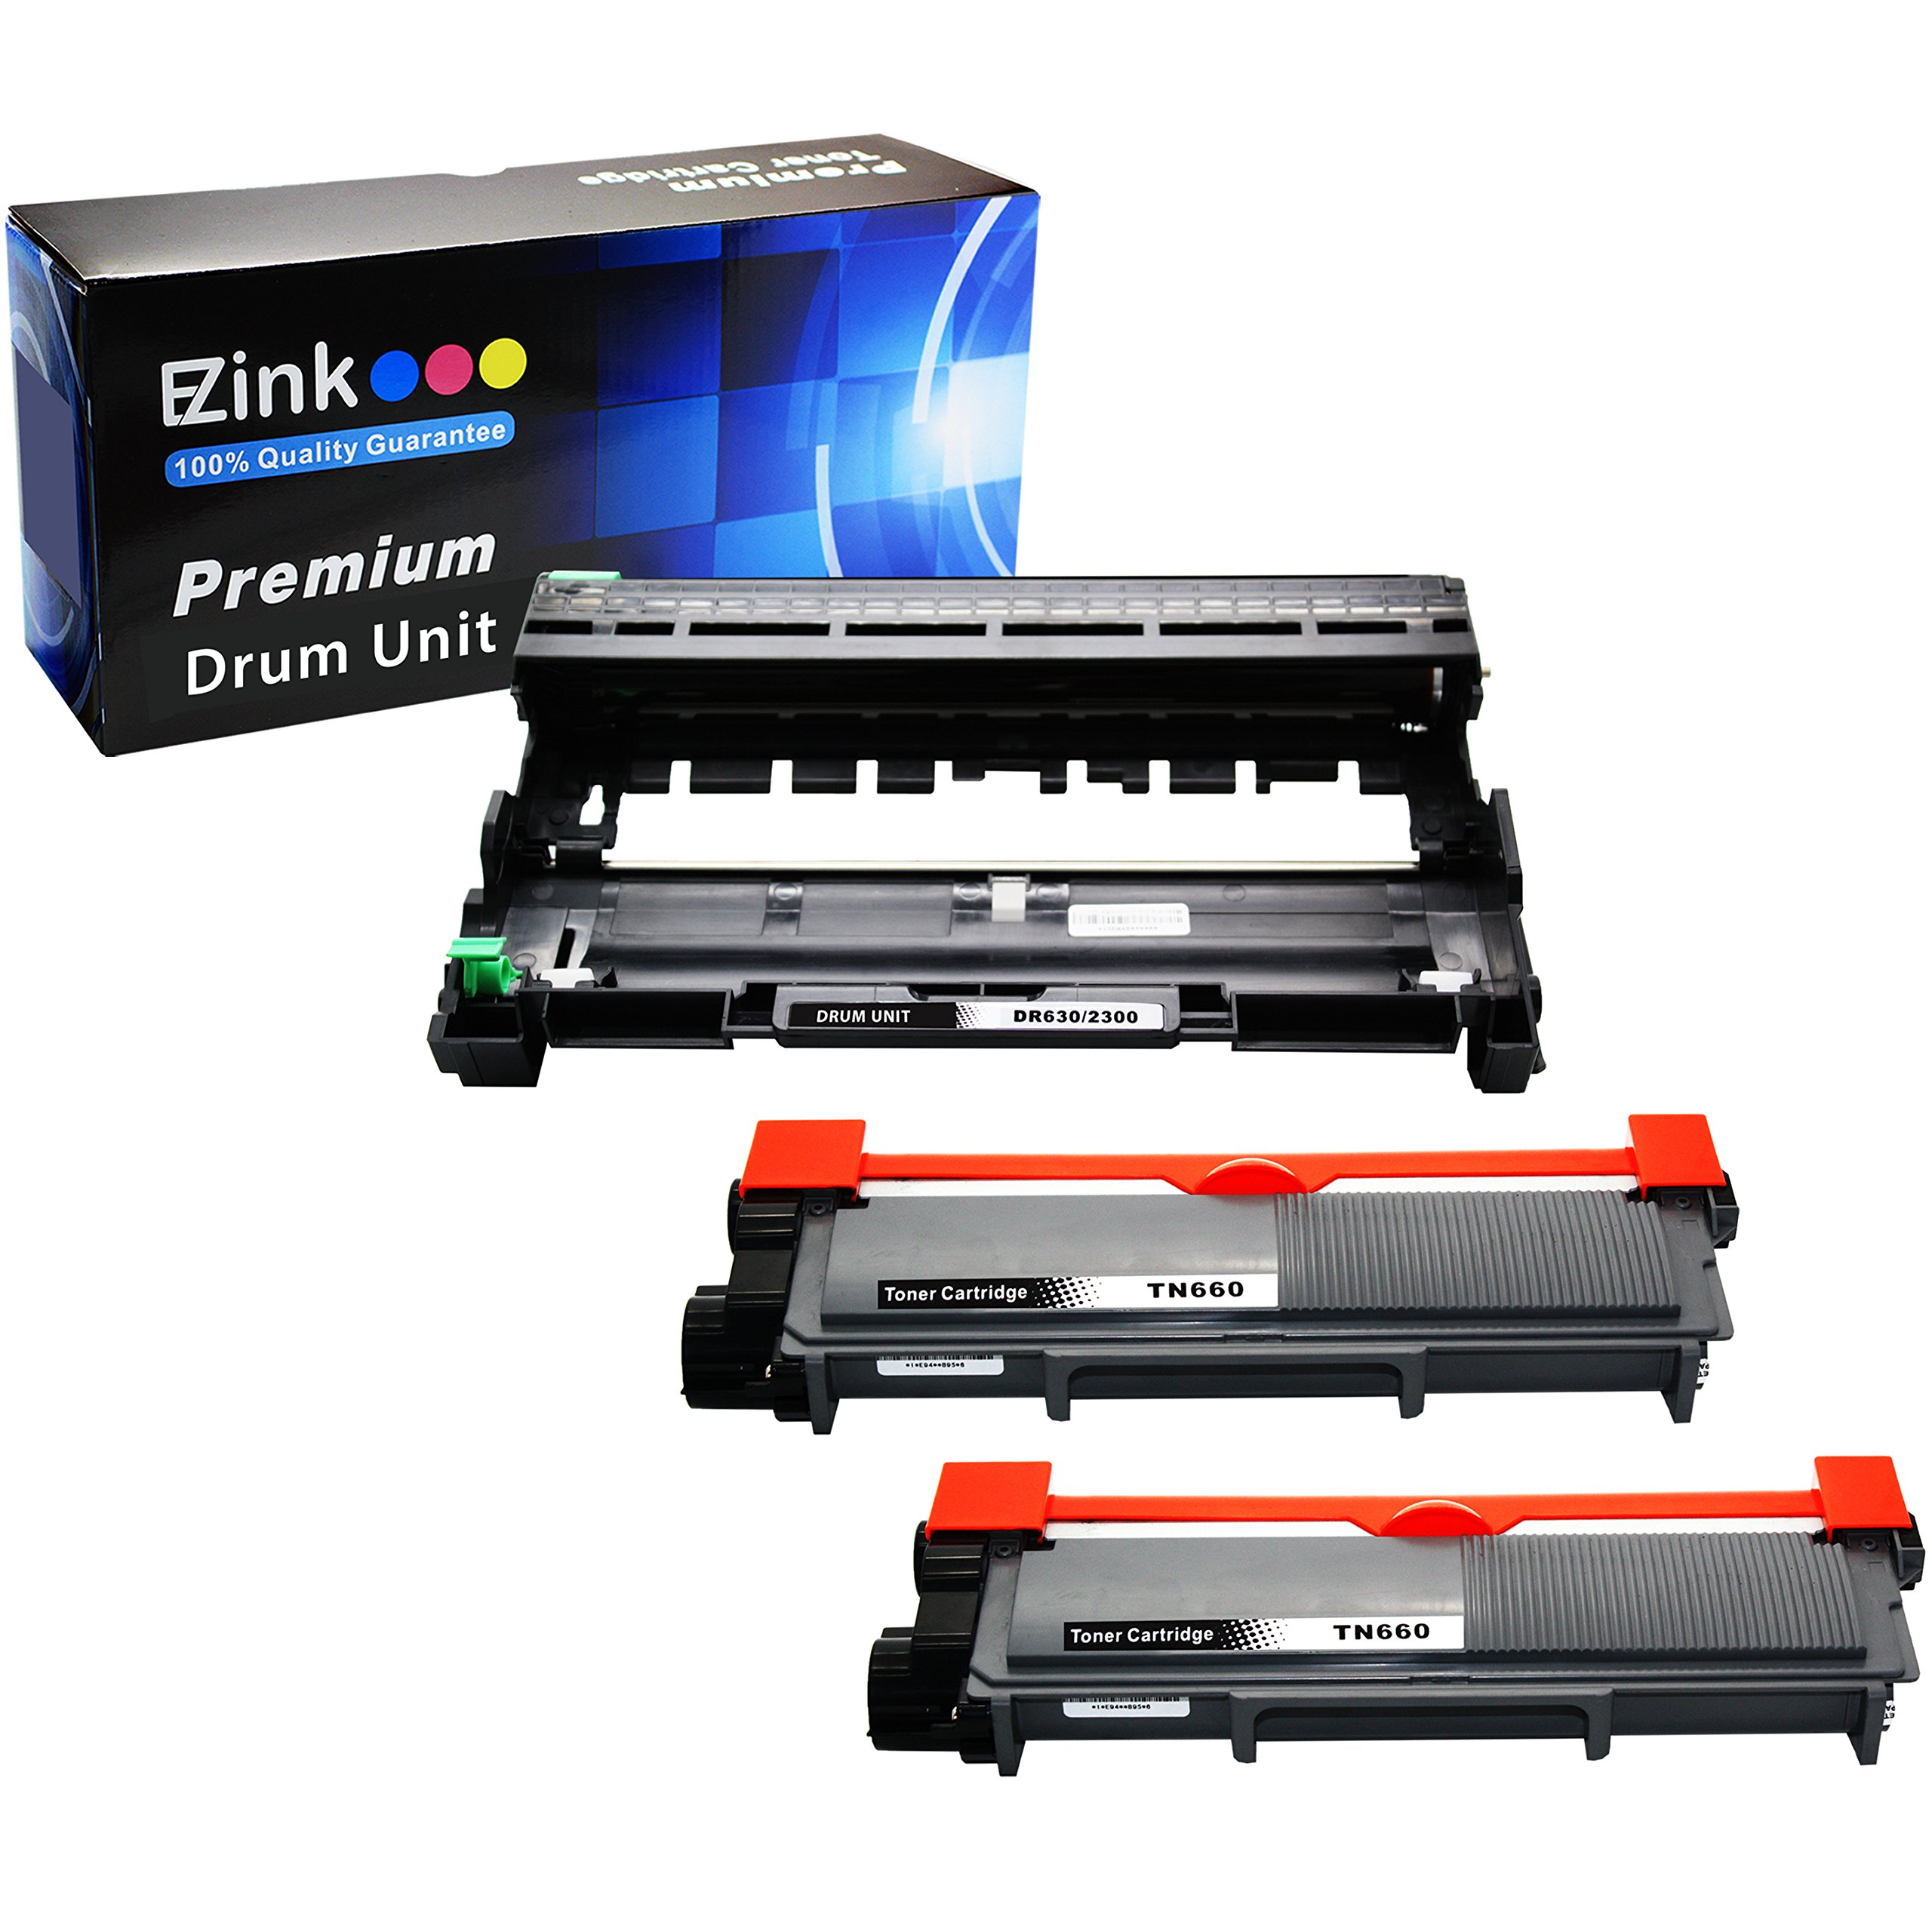 E-Z Ink (TM) Compatible Toner Cartridge Drum Unit Replacements For Brother DR630 TN630 TN660 High Yield To Use With HL-L2300D MFC-L2720DW MFC-L2740DW HL-L2305W(2 Black Toners 1 Drum Unit, 3 Pack)